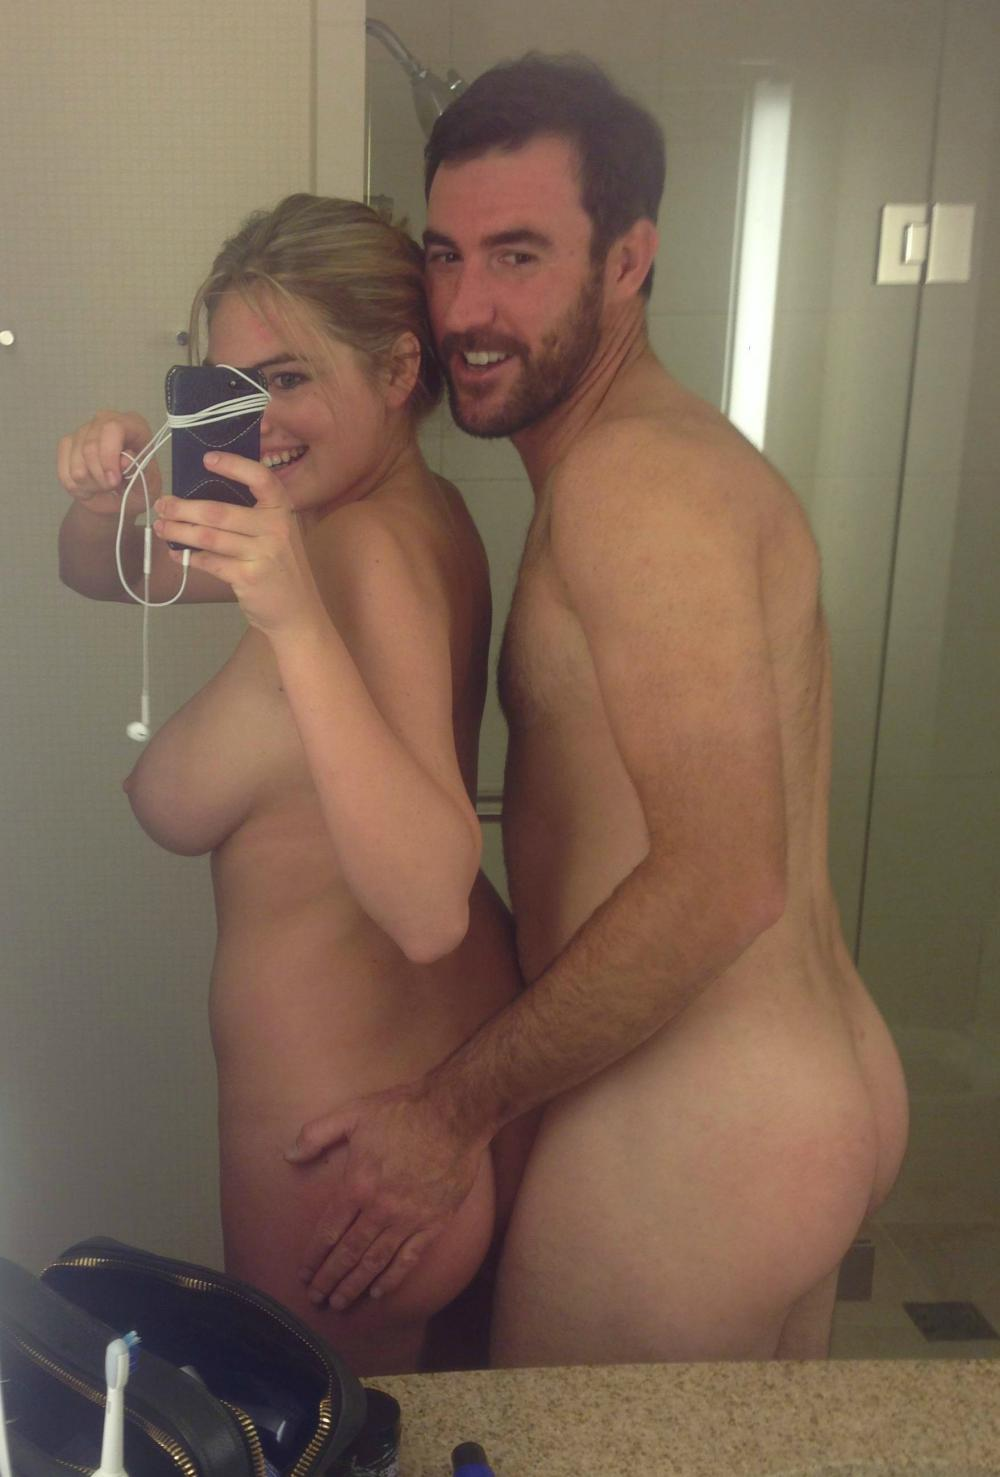 Fuck Kate Upton nudes (34 photo), Pussy, Sideboobs, Boobs, panties 2020